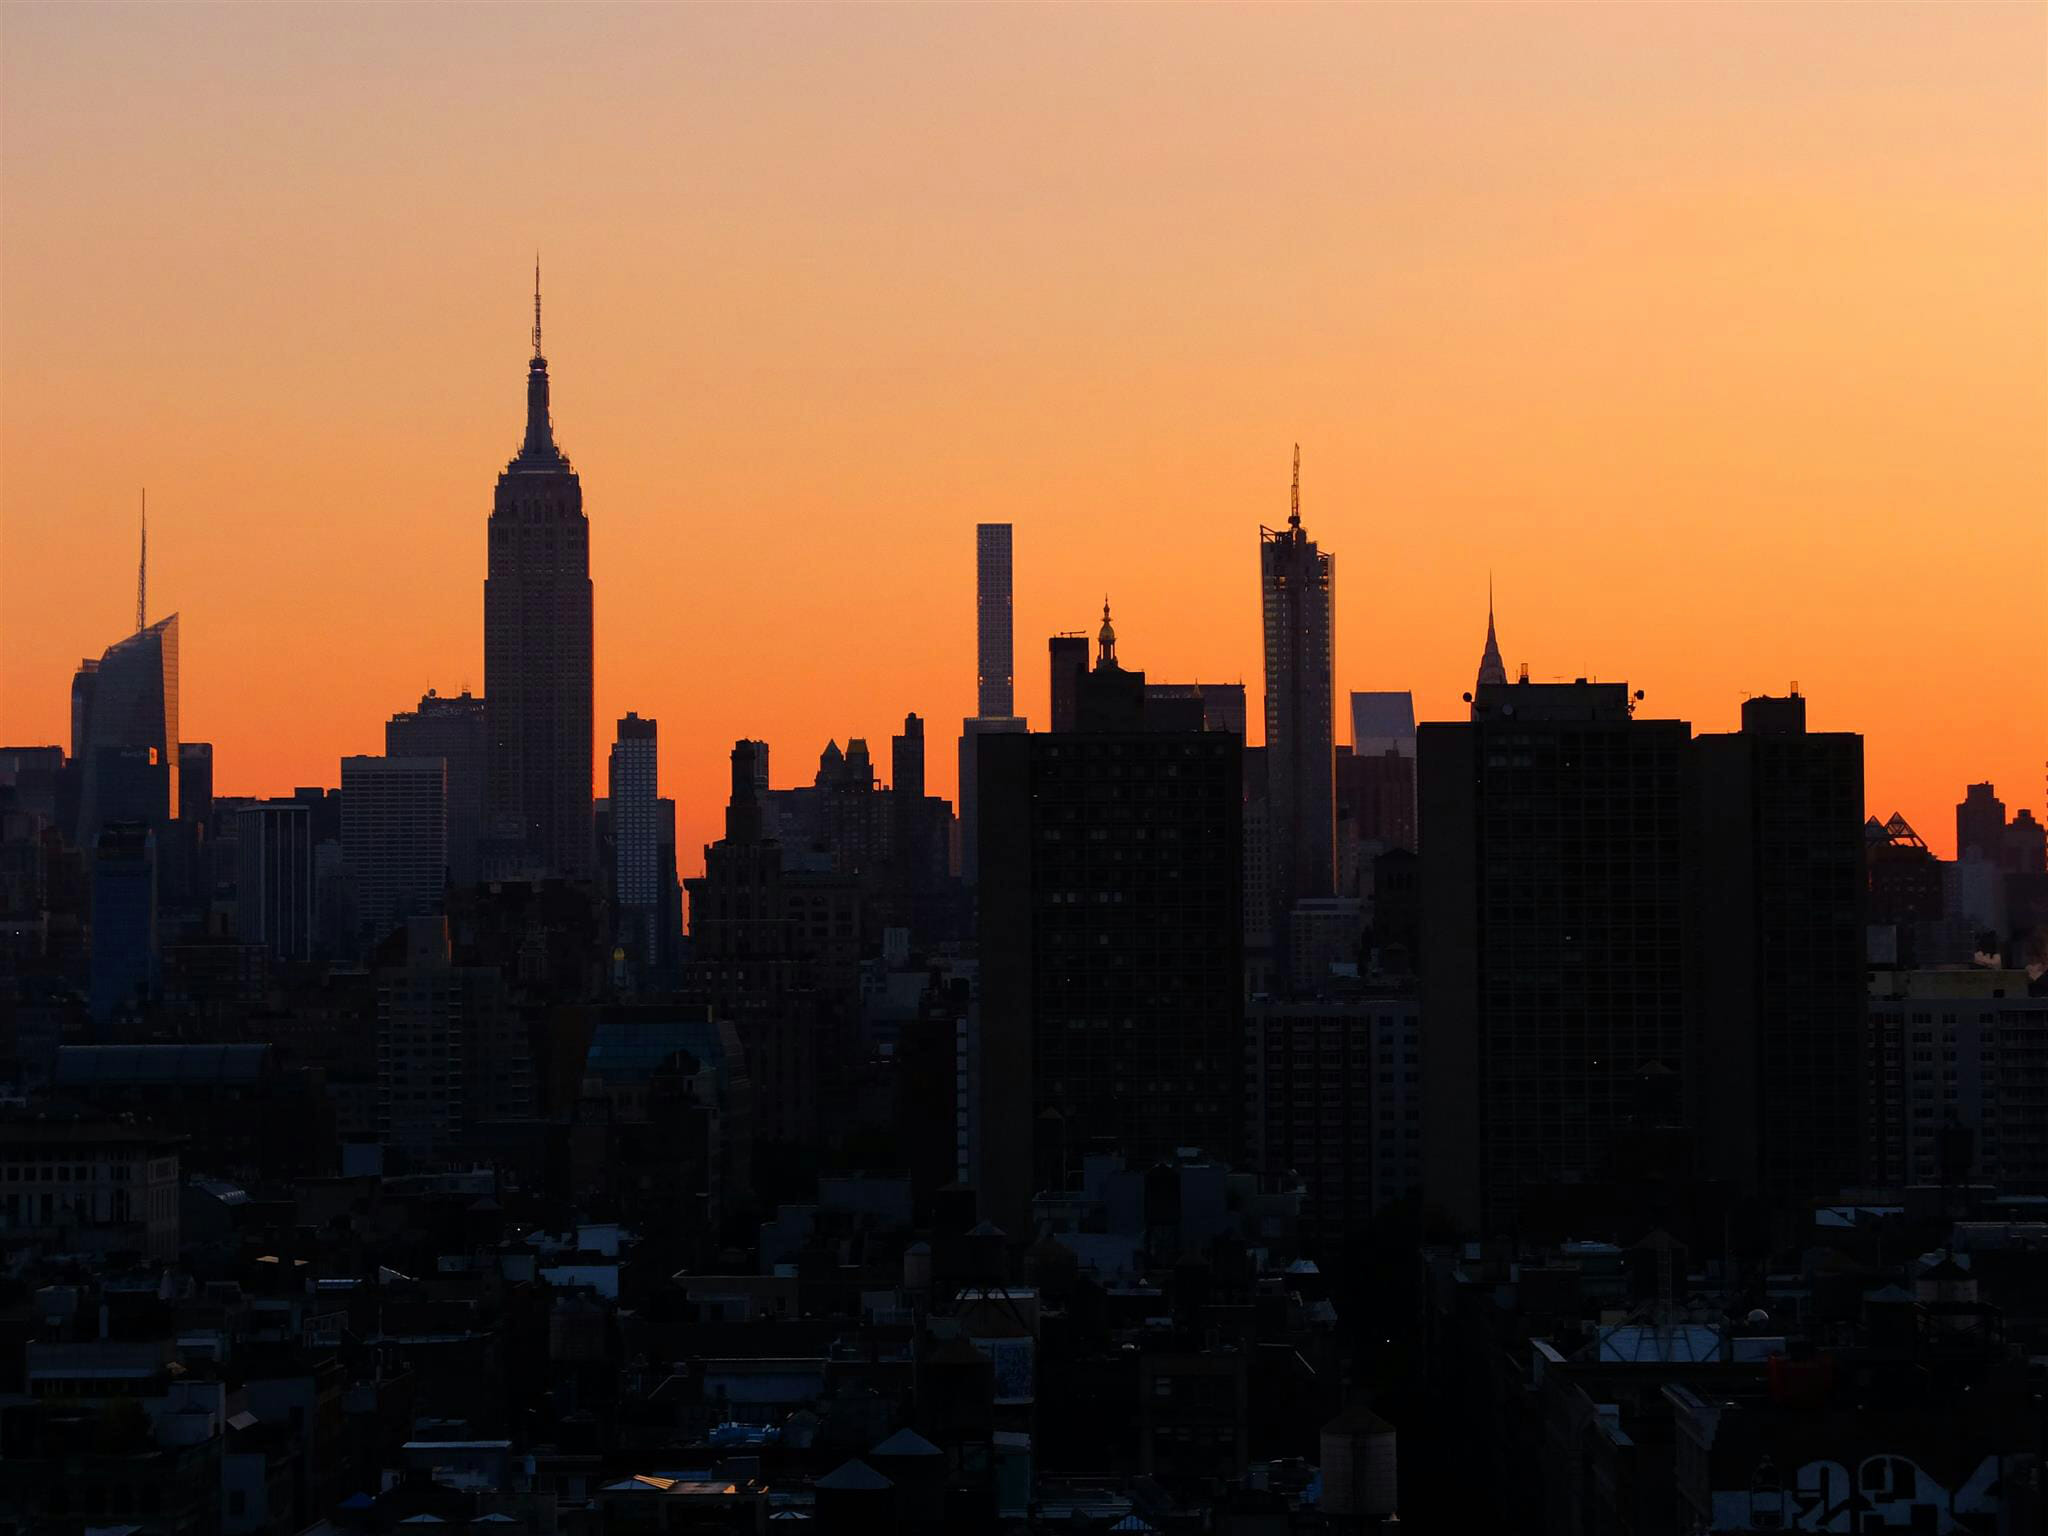 Sunrise in New York High Quality Wallpaper